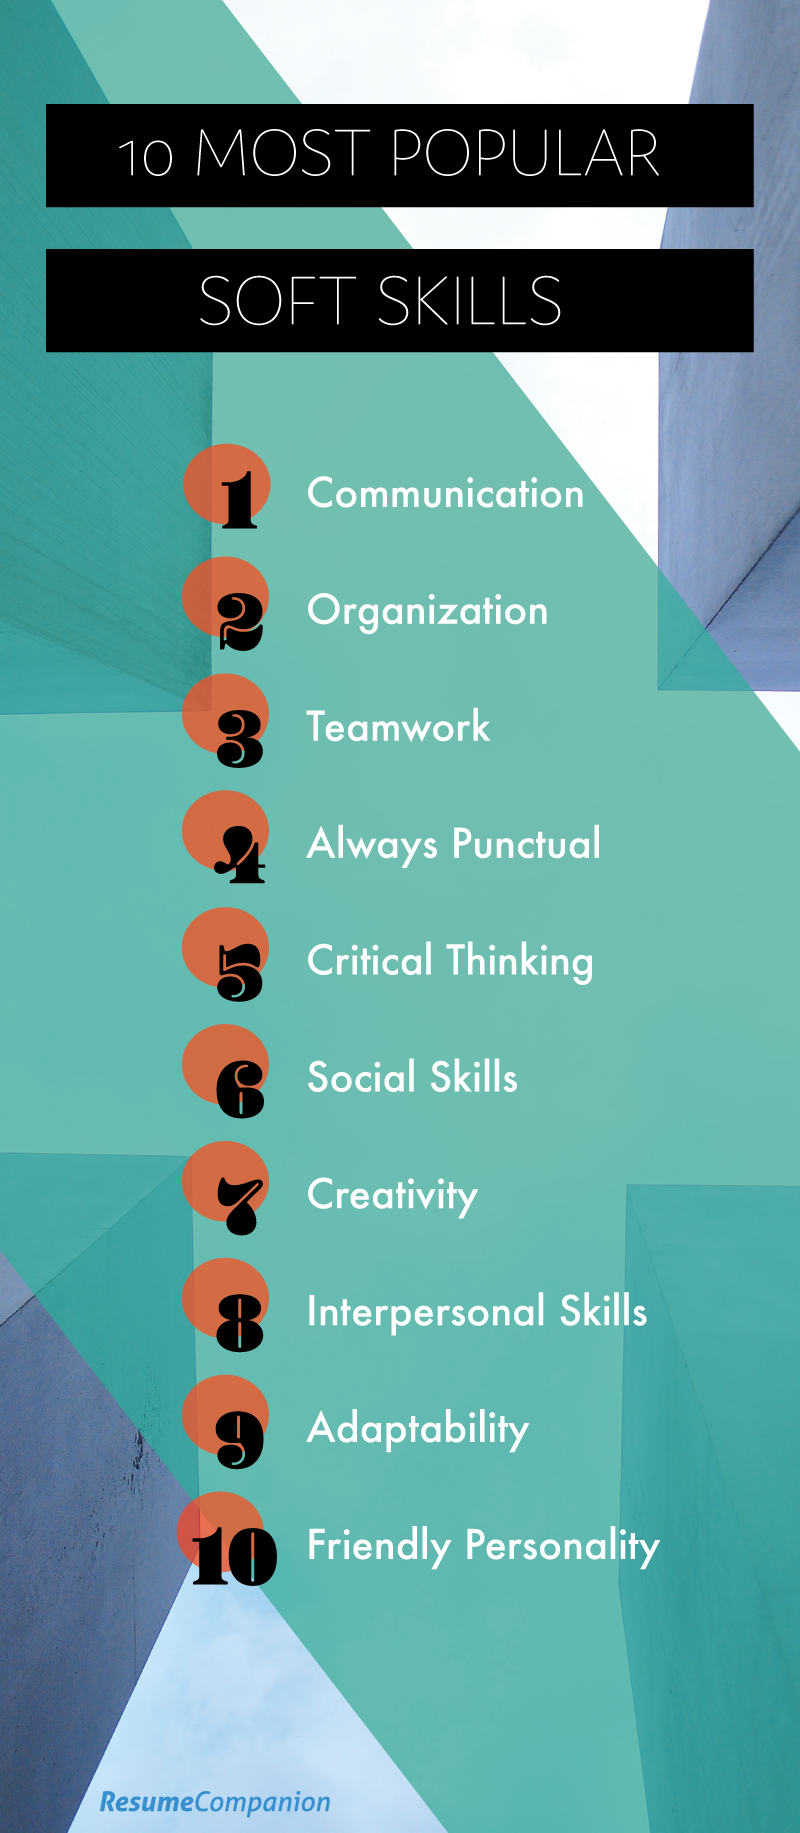 Top 10 Soft Skills For A Resume Employers Look For Infographic Resume Skills Soft Skills Skills